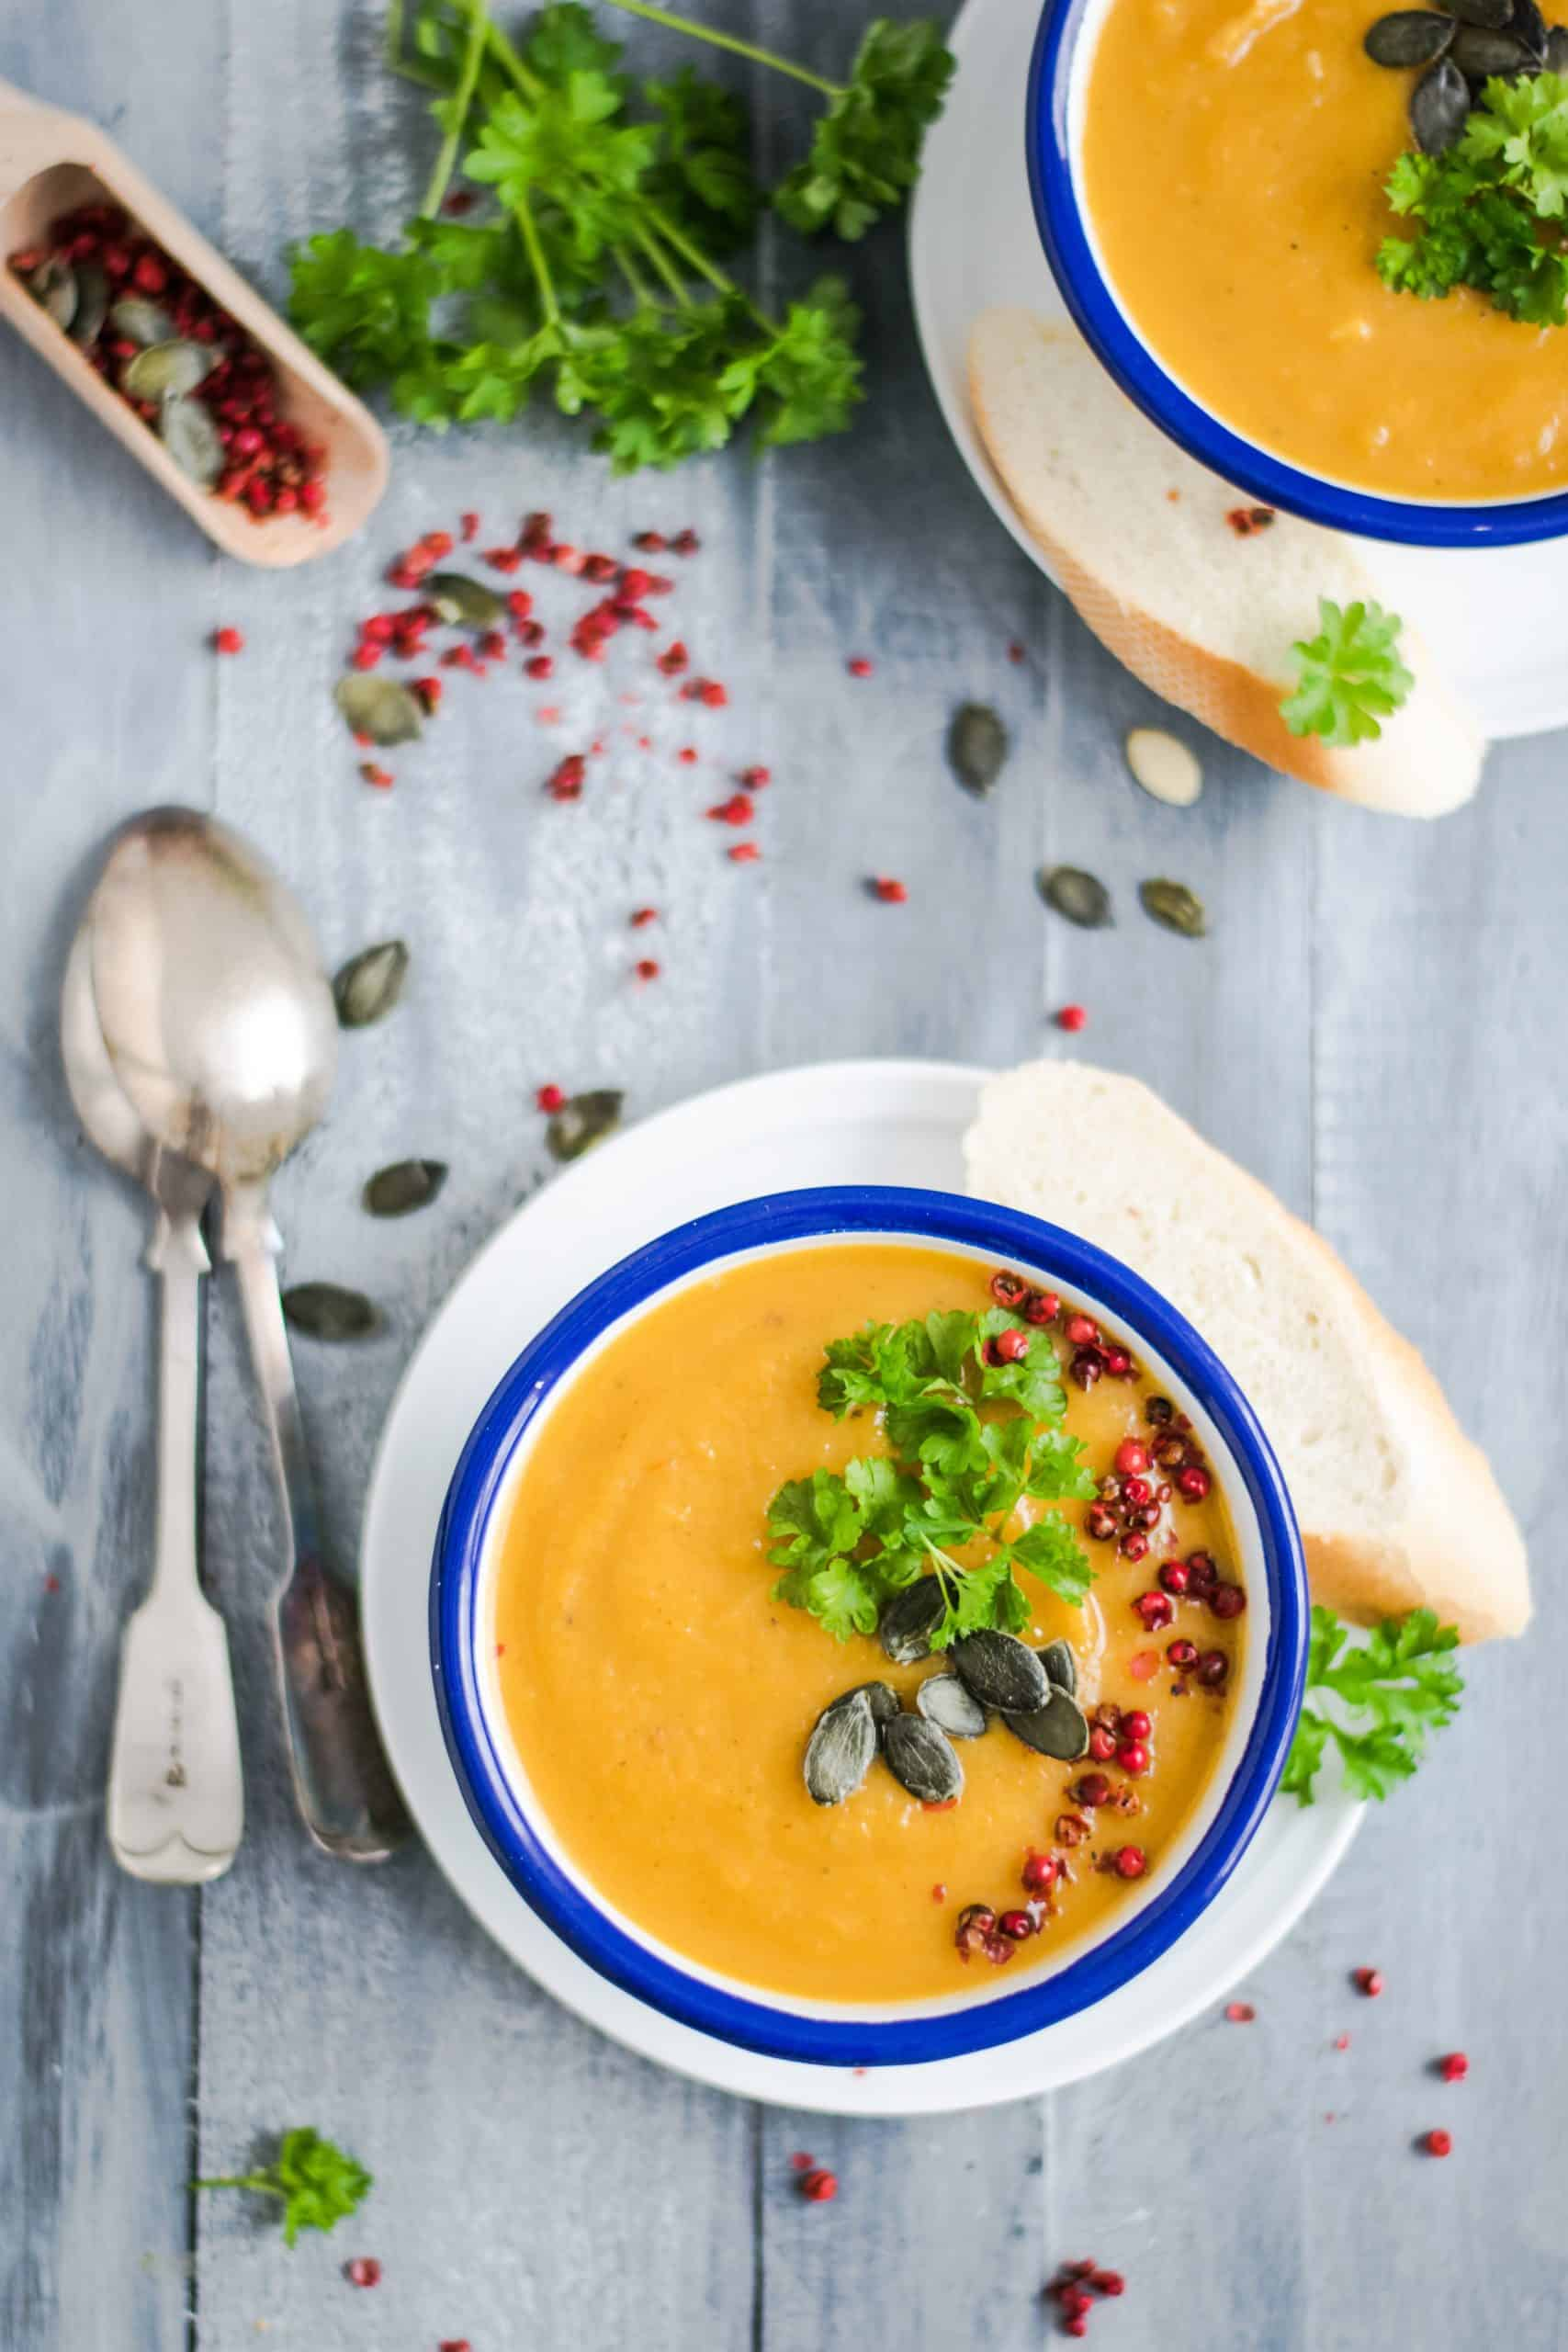 Flavored Soup: How Do You Make Soup More Flavorful?